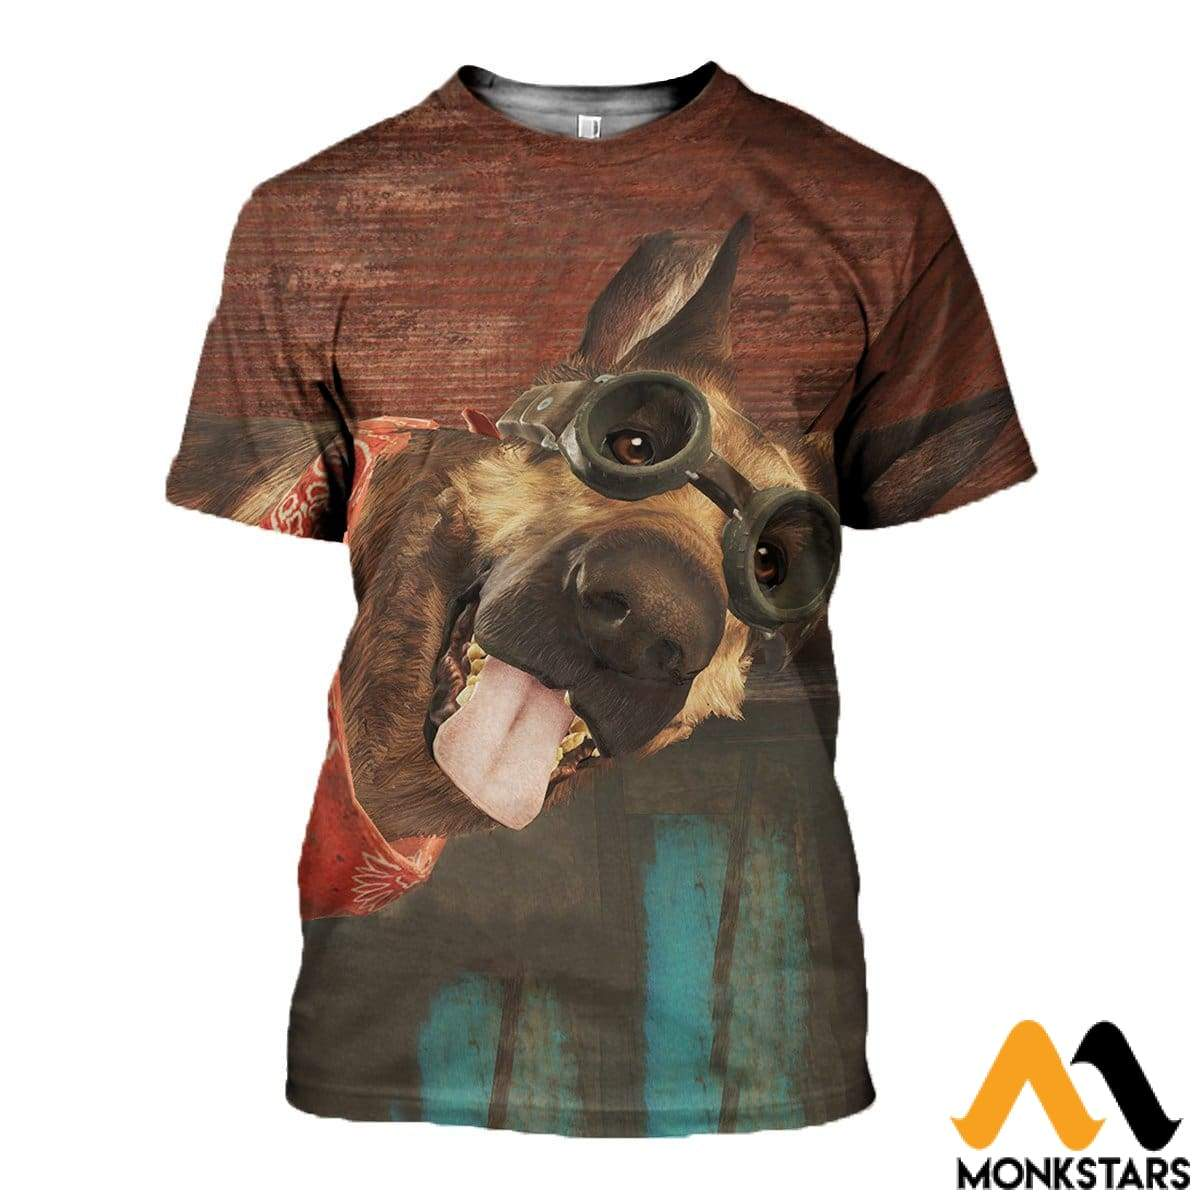 3D All Over Printed Dogmeat Clothes T-Shirt / Xs